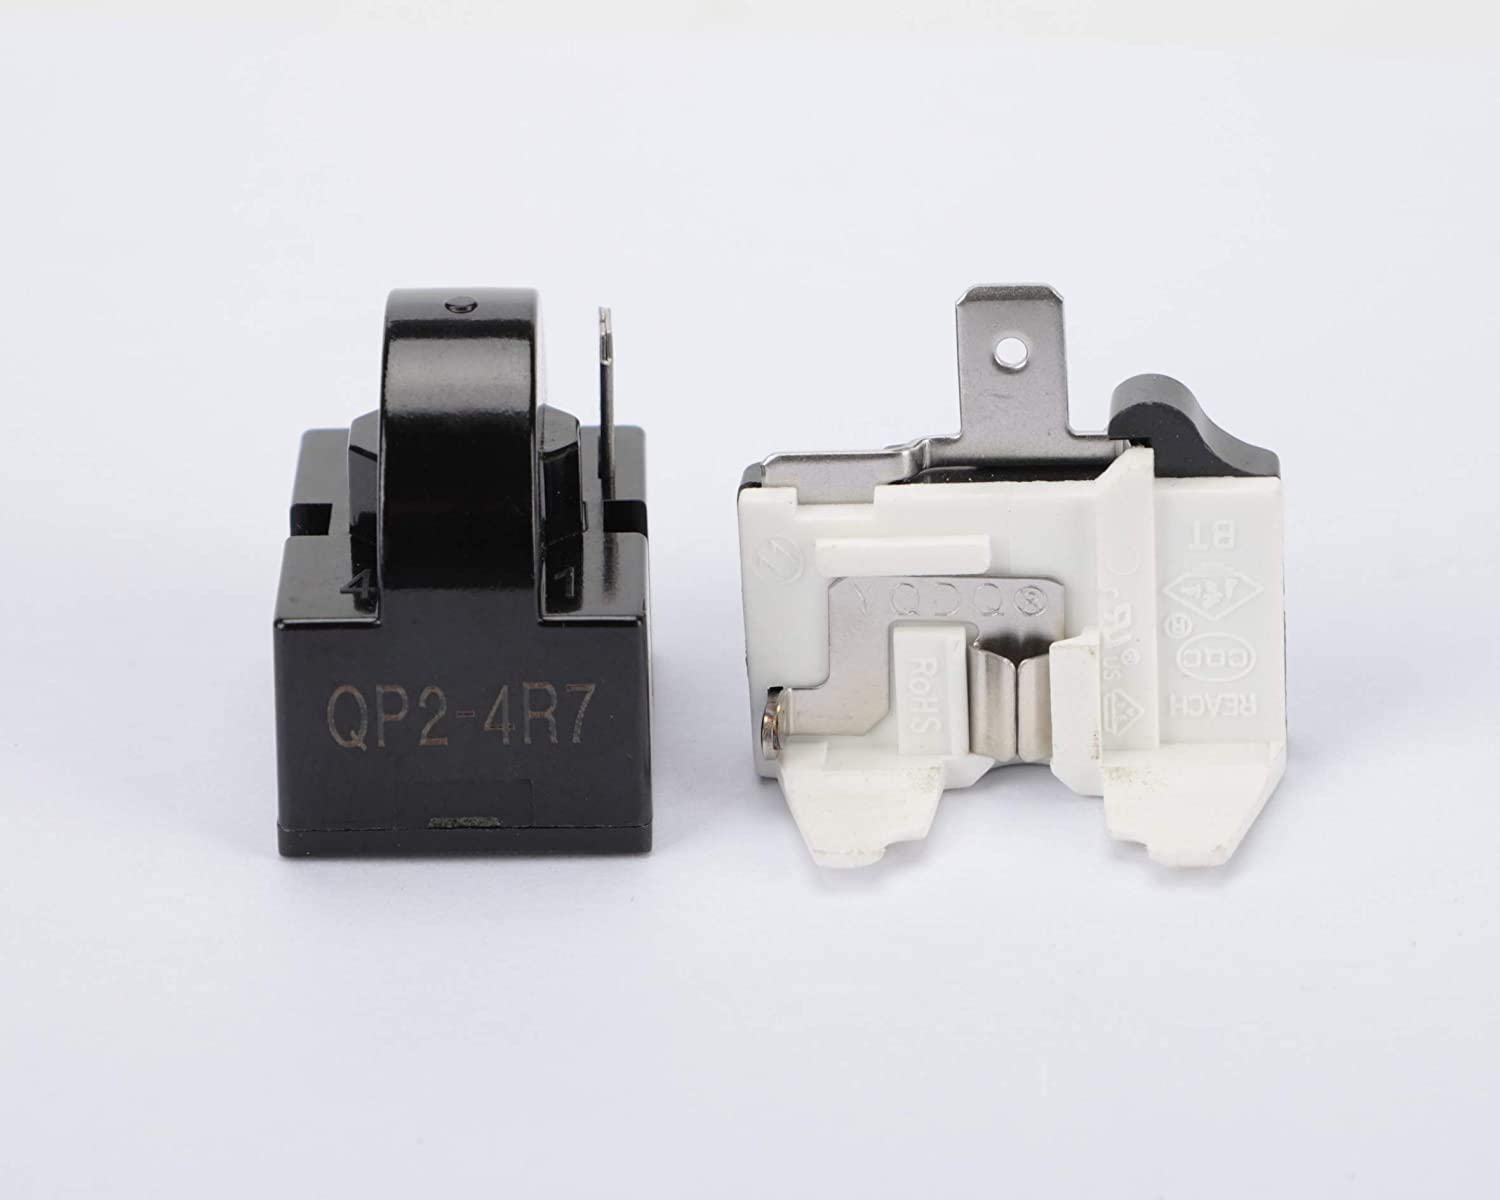 1Pcs QP2-4R7 1Pin 4.7 Ohm PTC Refrigerator Starter/Start Relay for Vissani Danby Compressor Relay and 1Pcs Refrigerator Overload Protector 1/2HP,